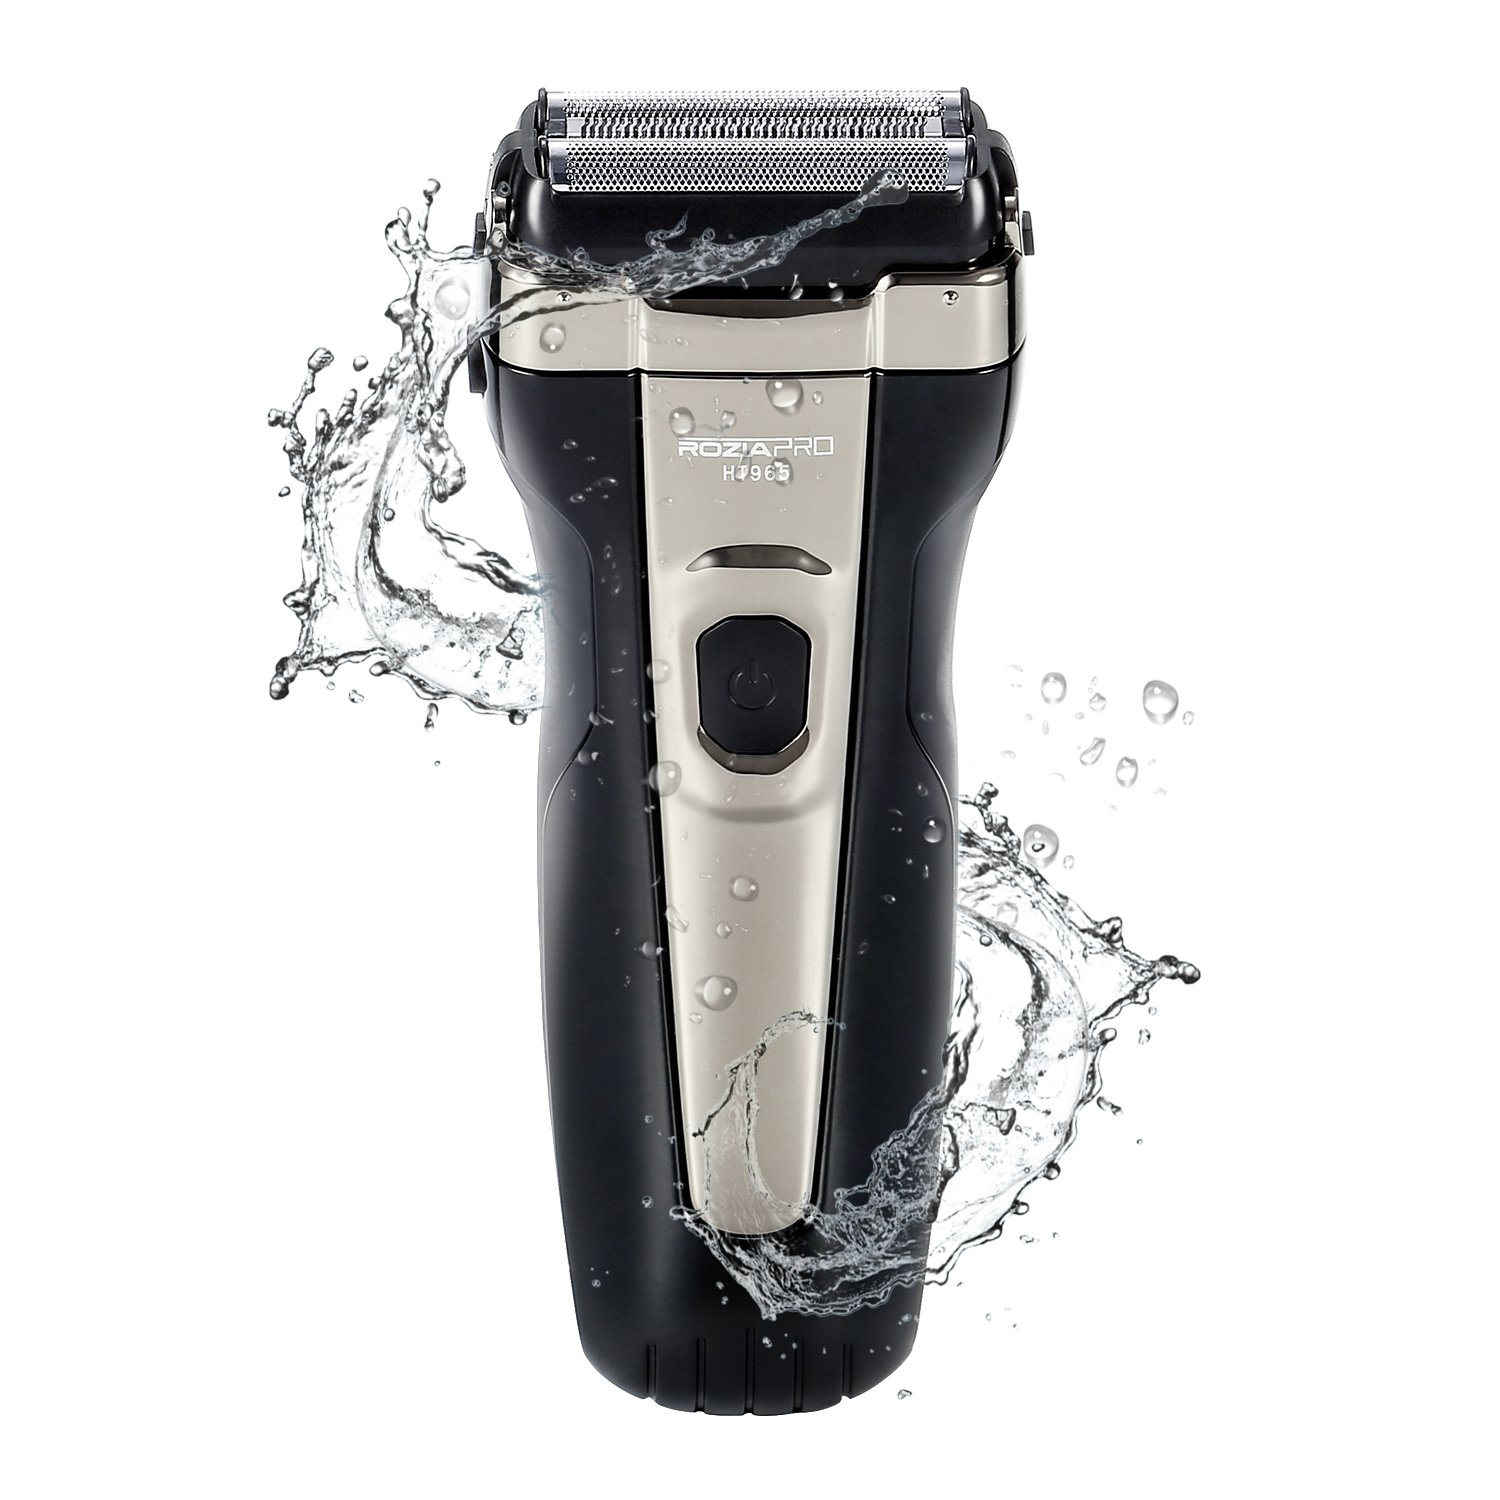 Mens Electric Shaver Cordless Professional Foil Razor for Men Wet & Dry Beard Trimmer Waterproof Rechargable USB Sideburn Razor,with Pop-up Trimmer LED Display